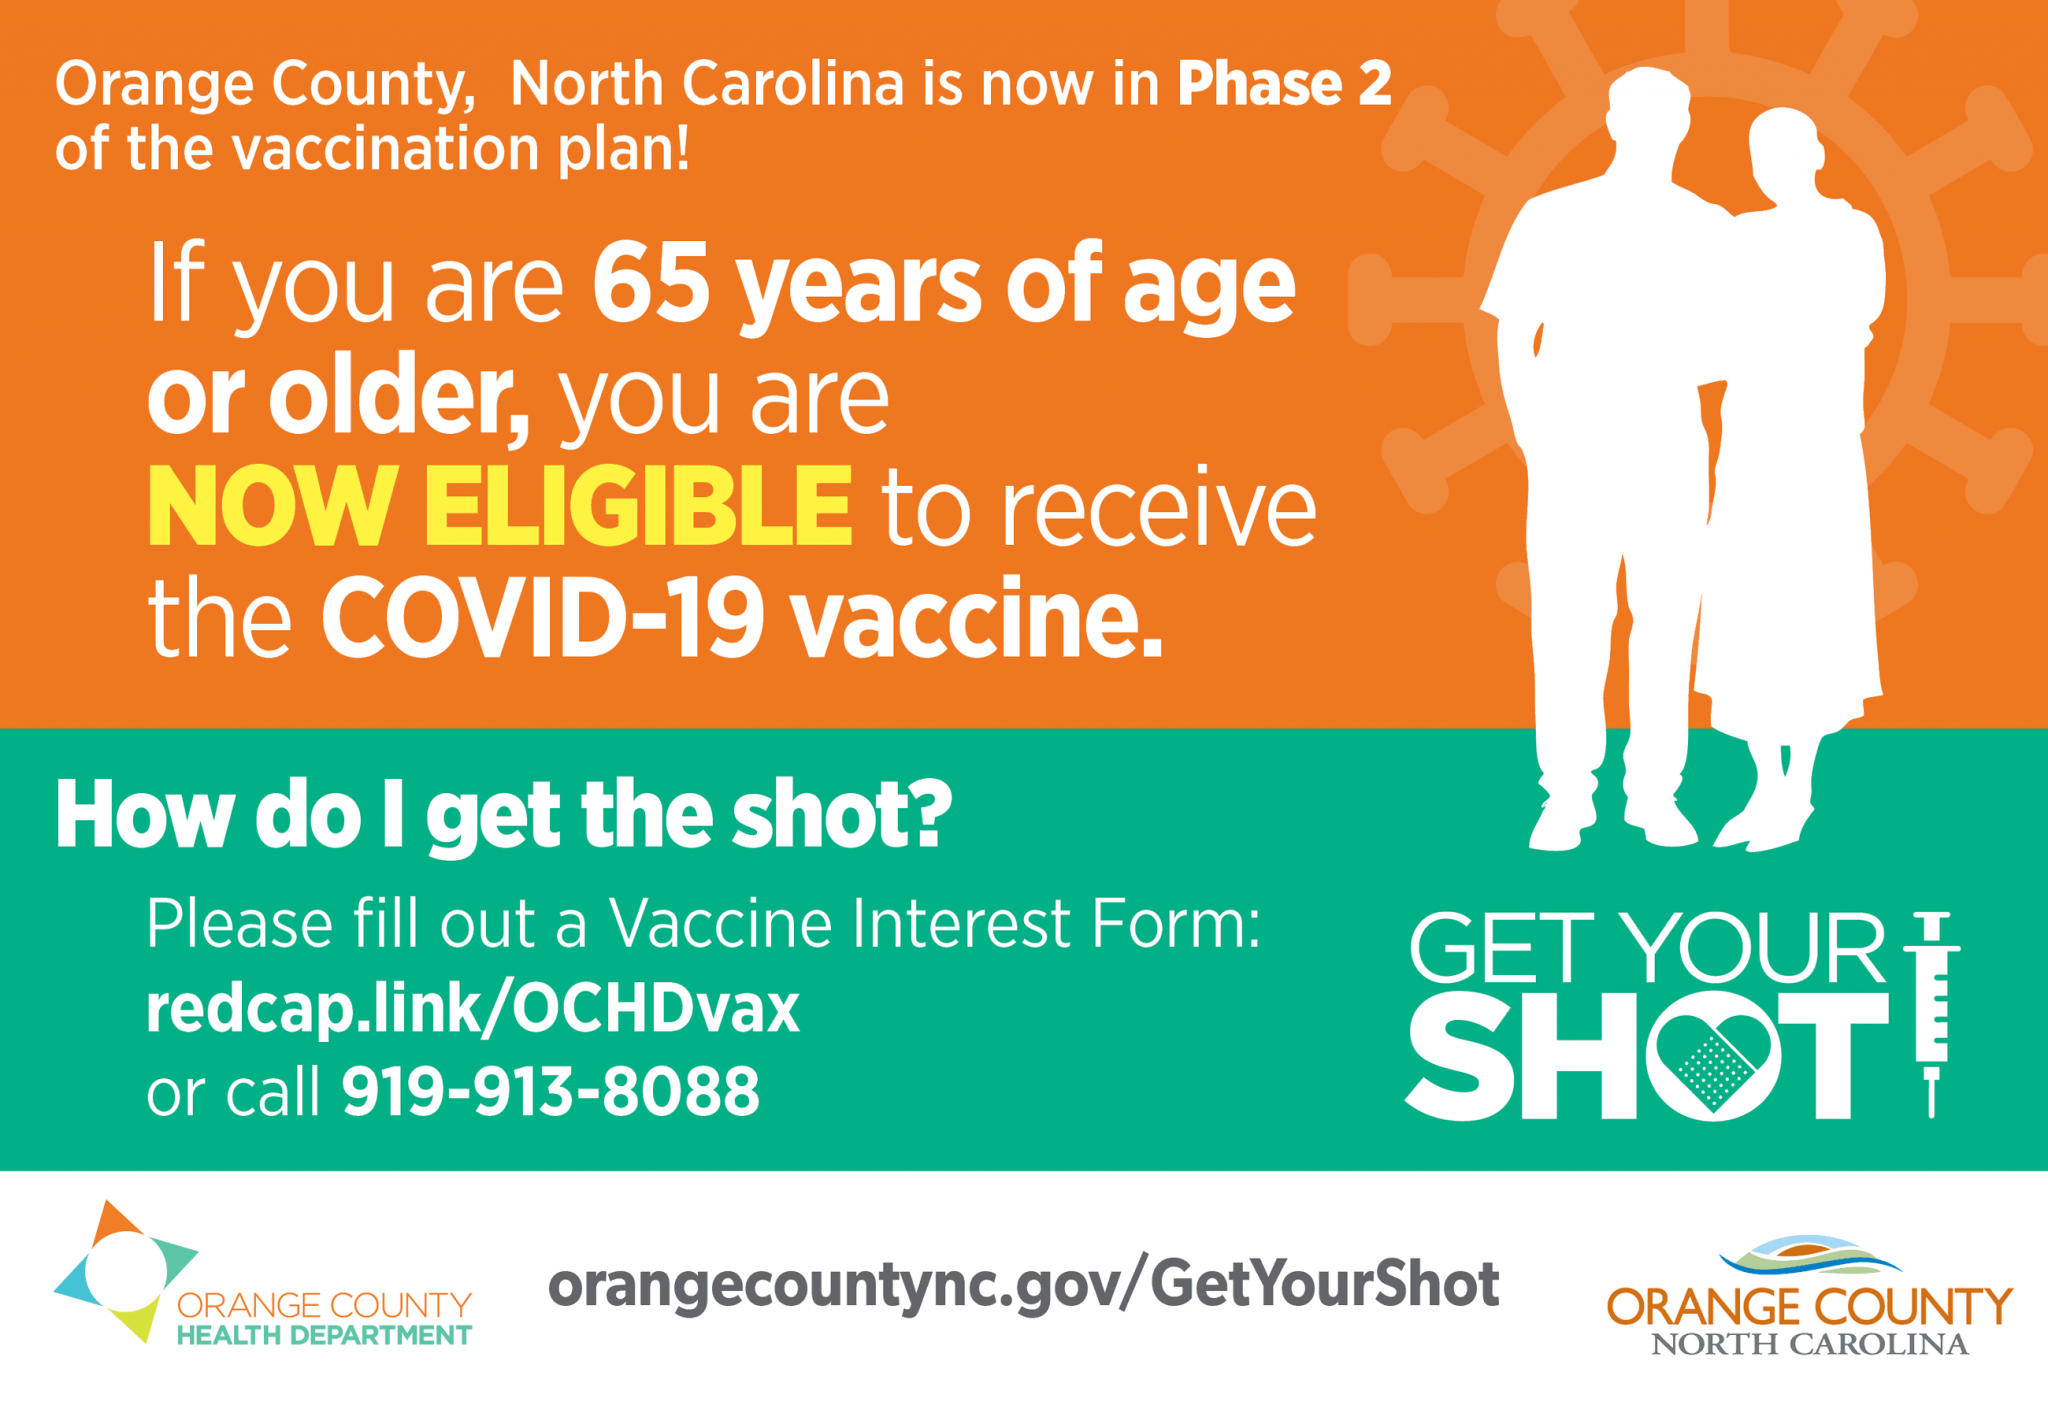 Testing and Vaccines - The Chamber For a Greater Chapel Hill-Carrboro